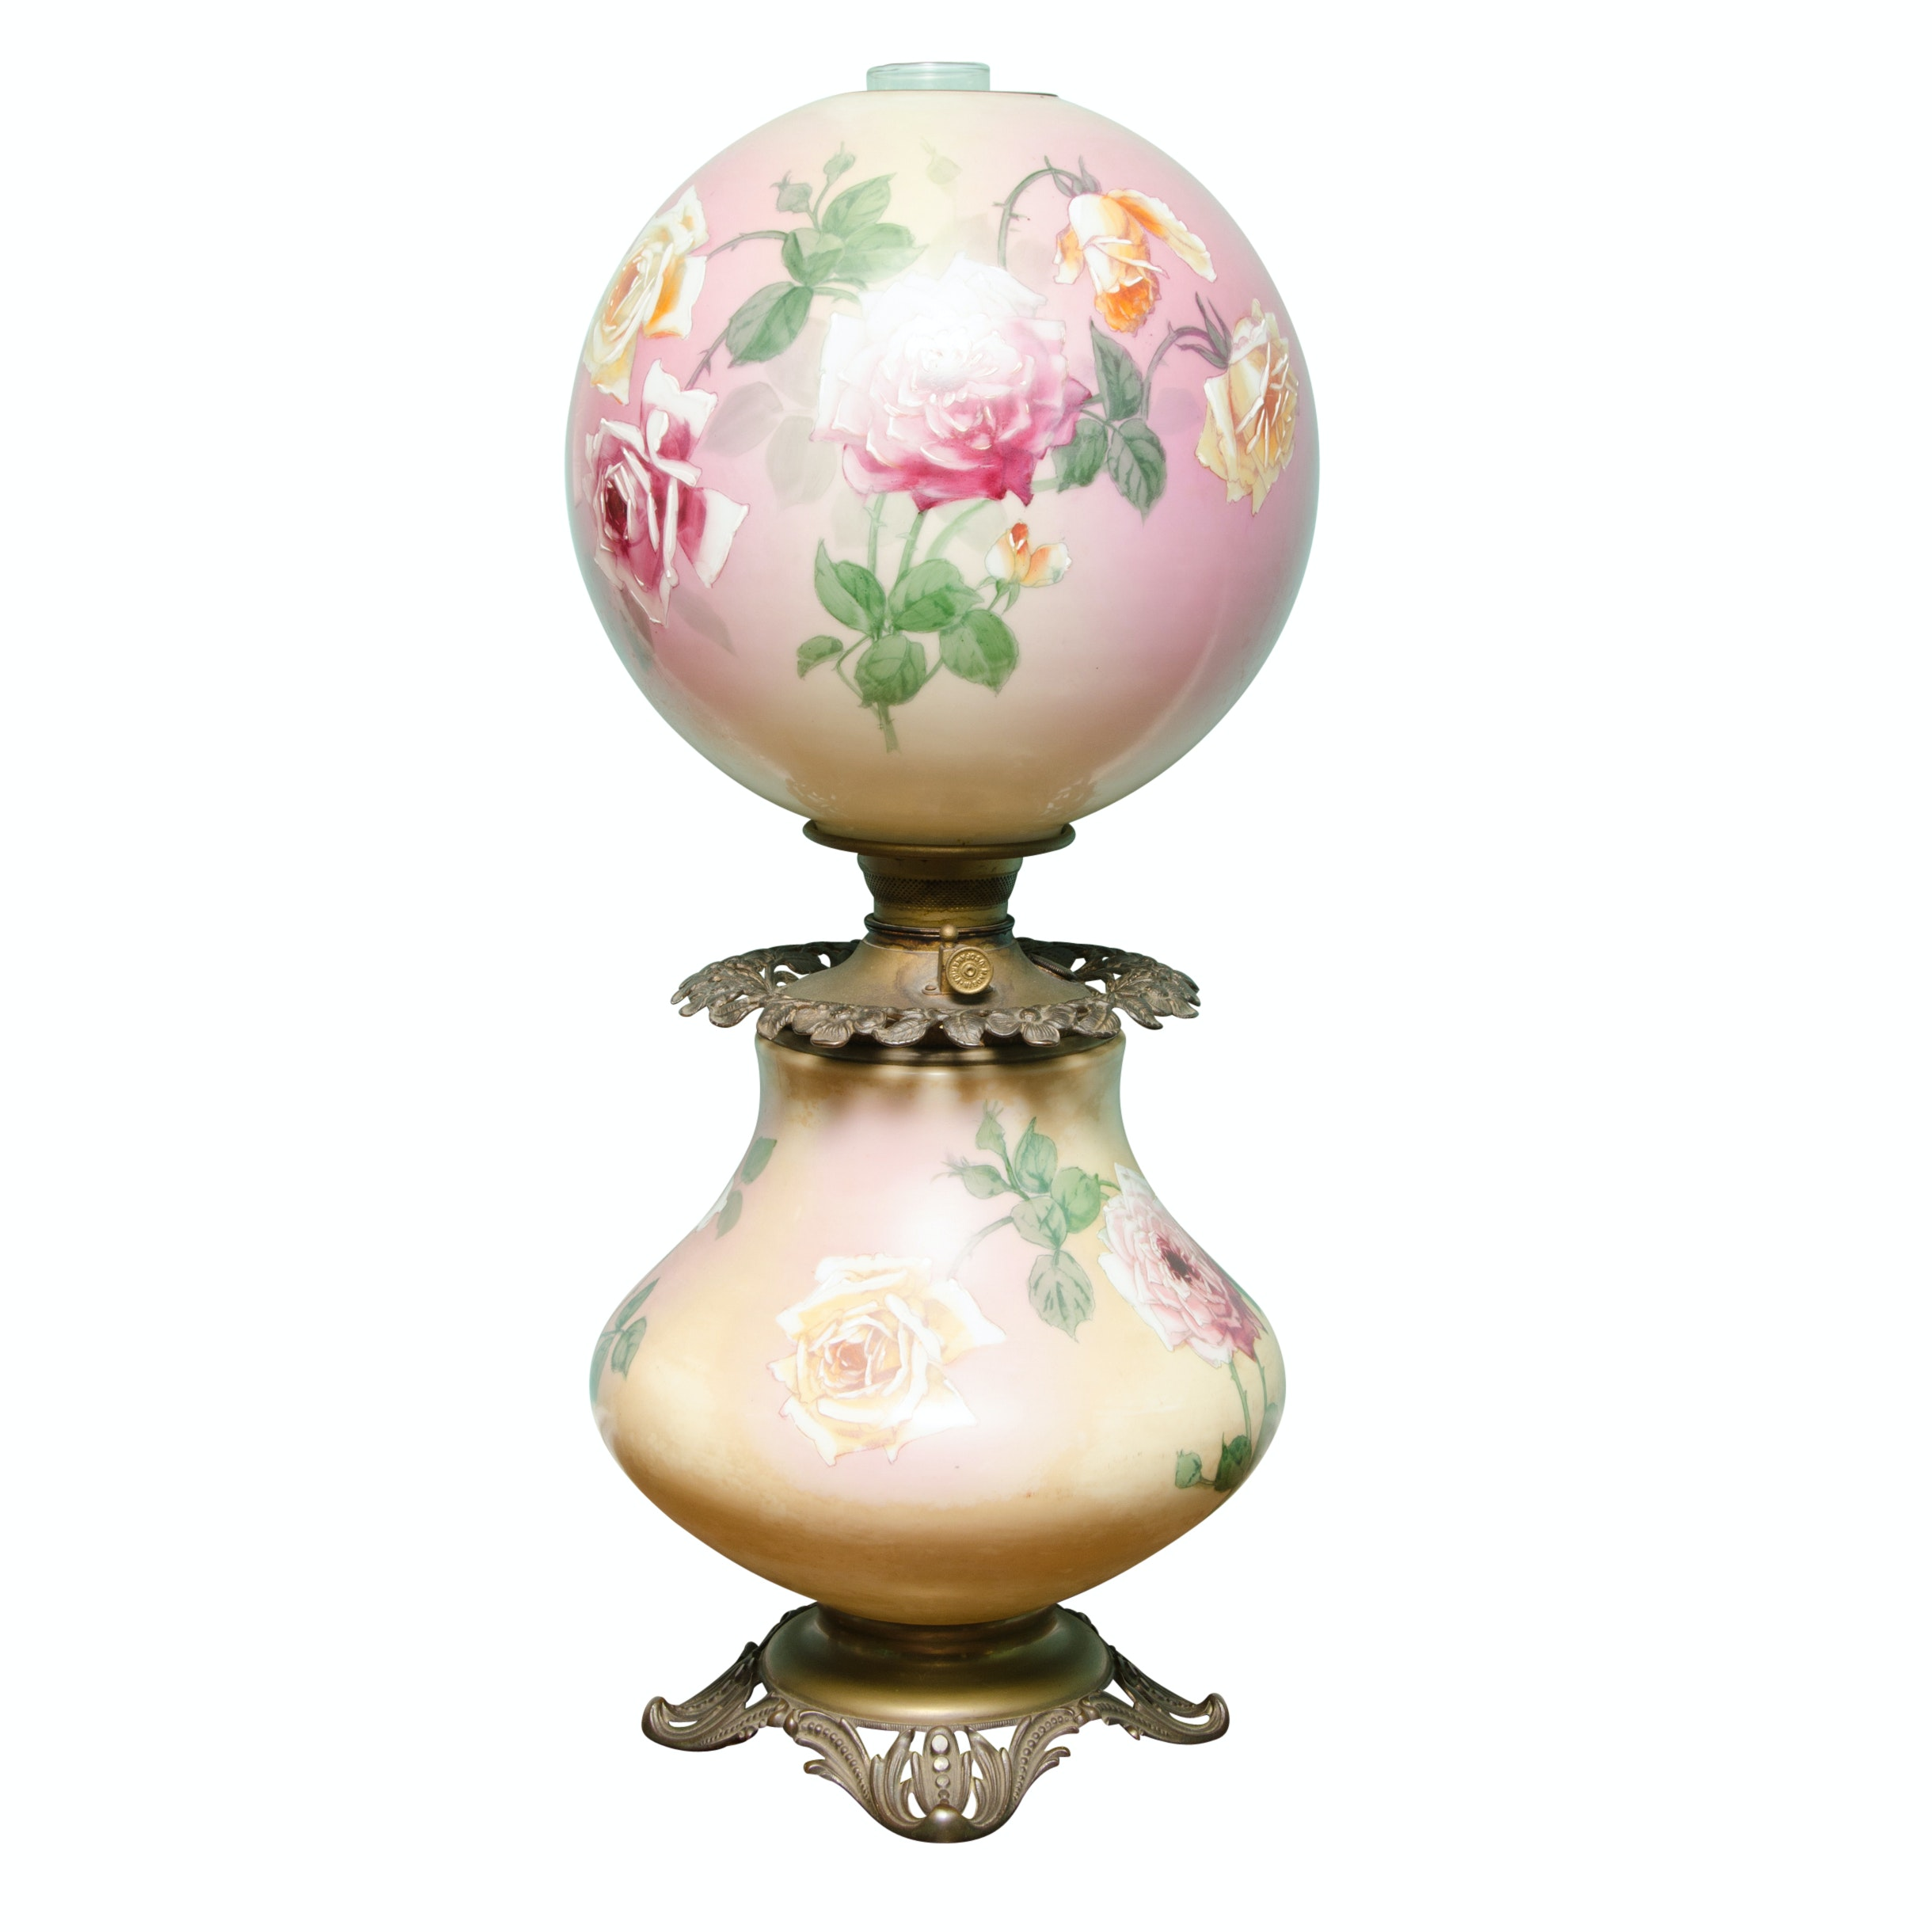 Antique Hand-Painted Parlor Lamp